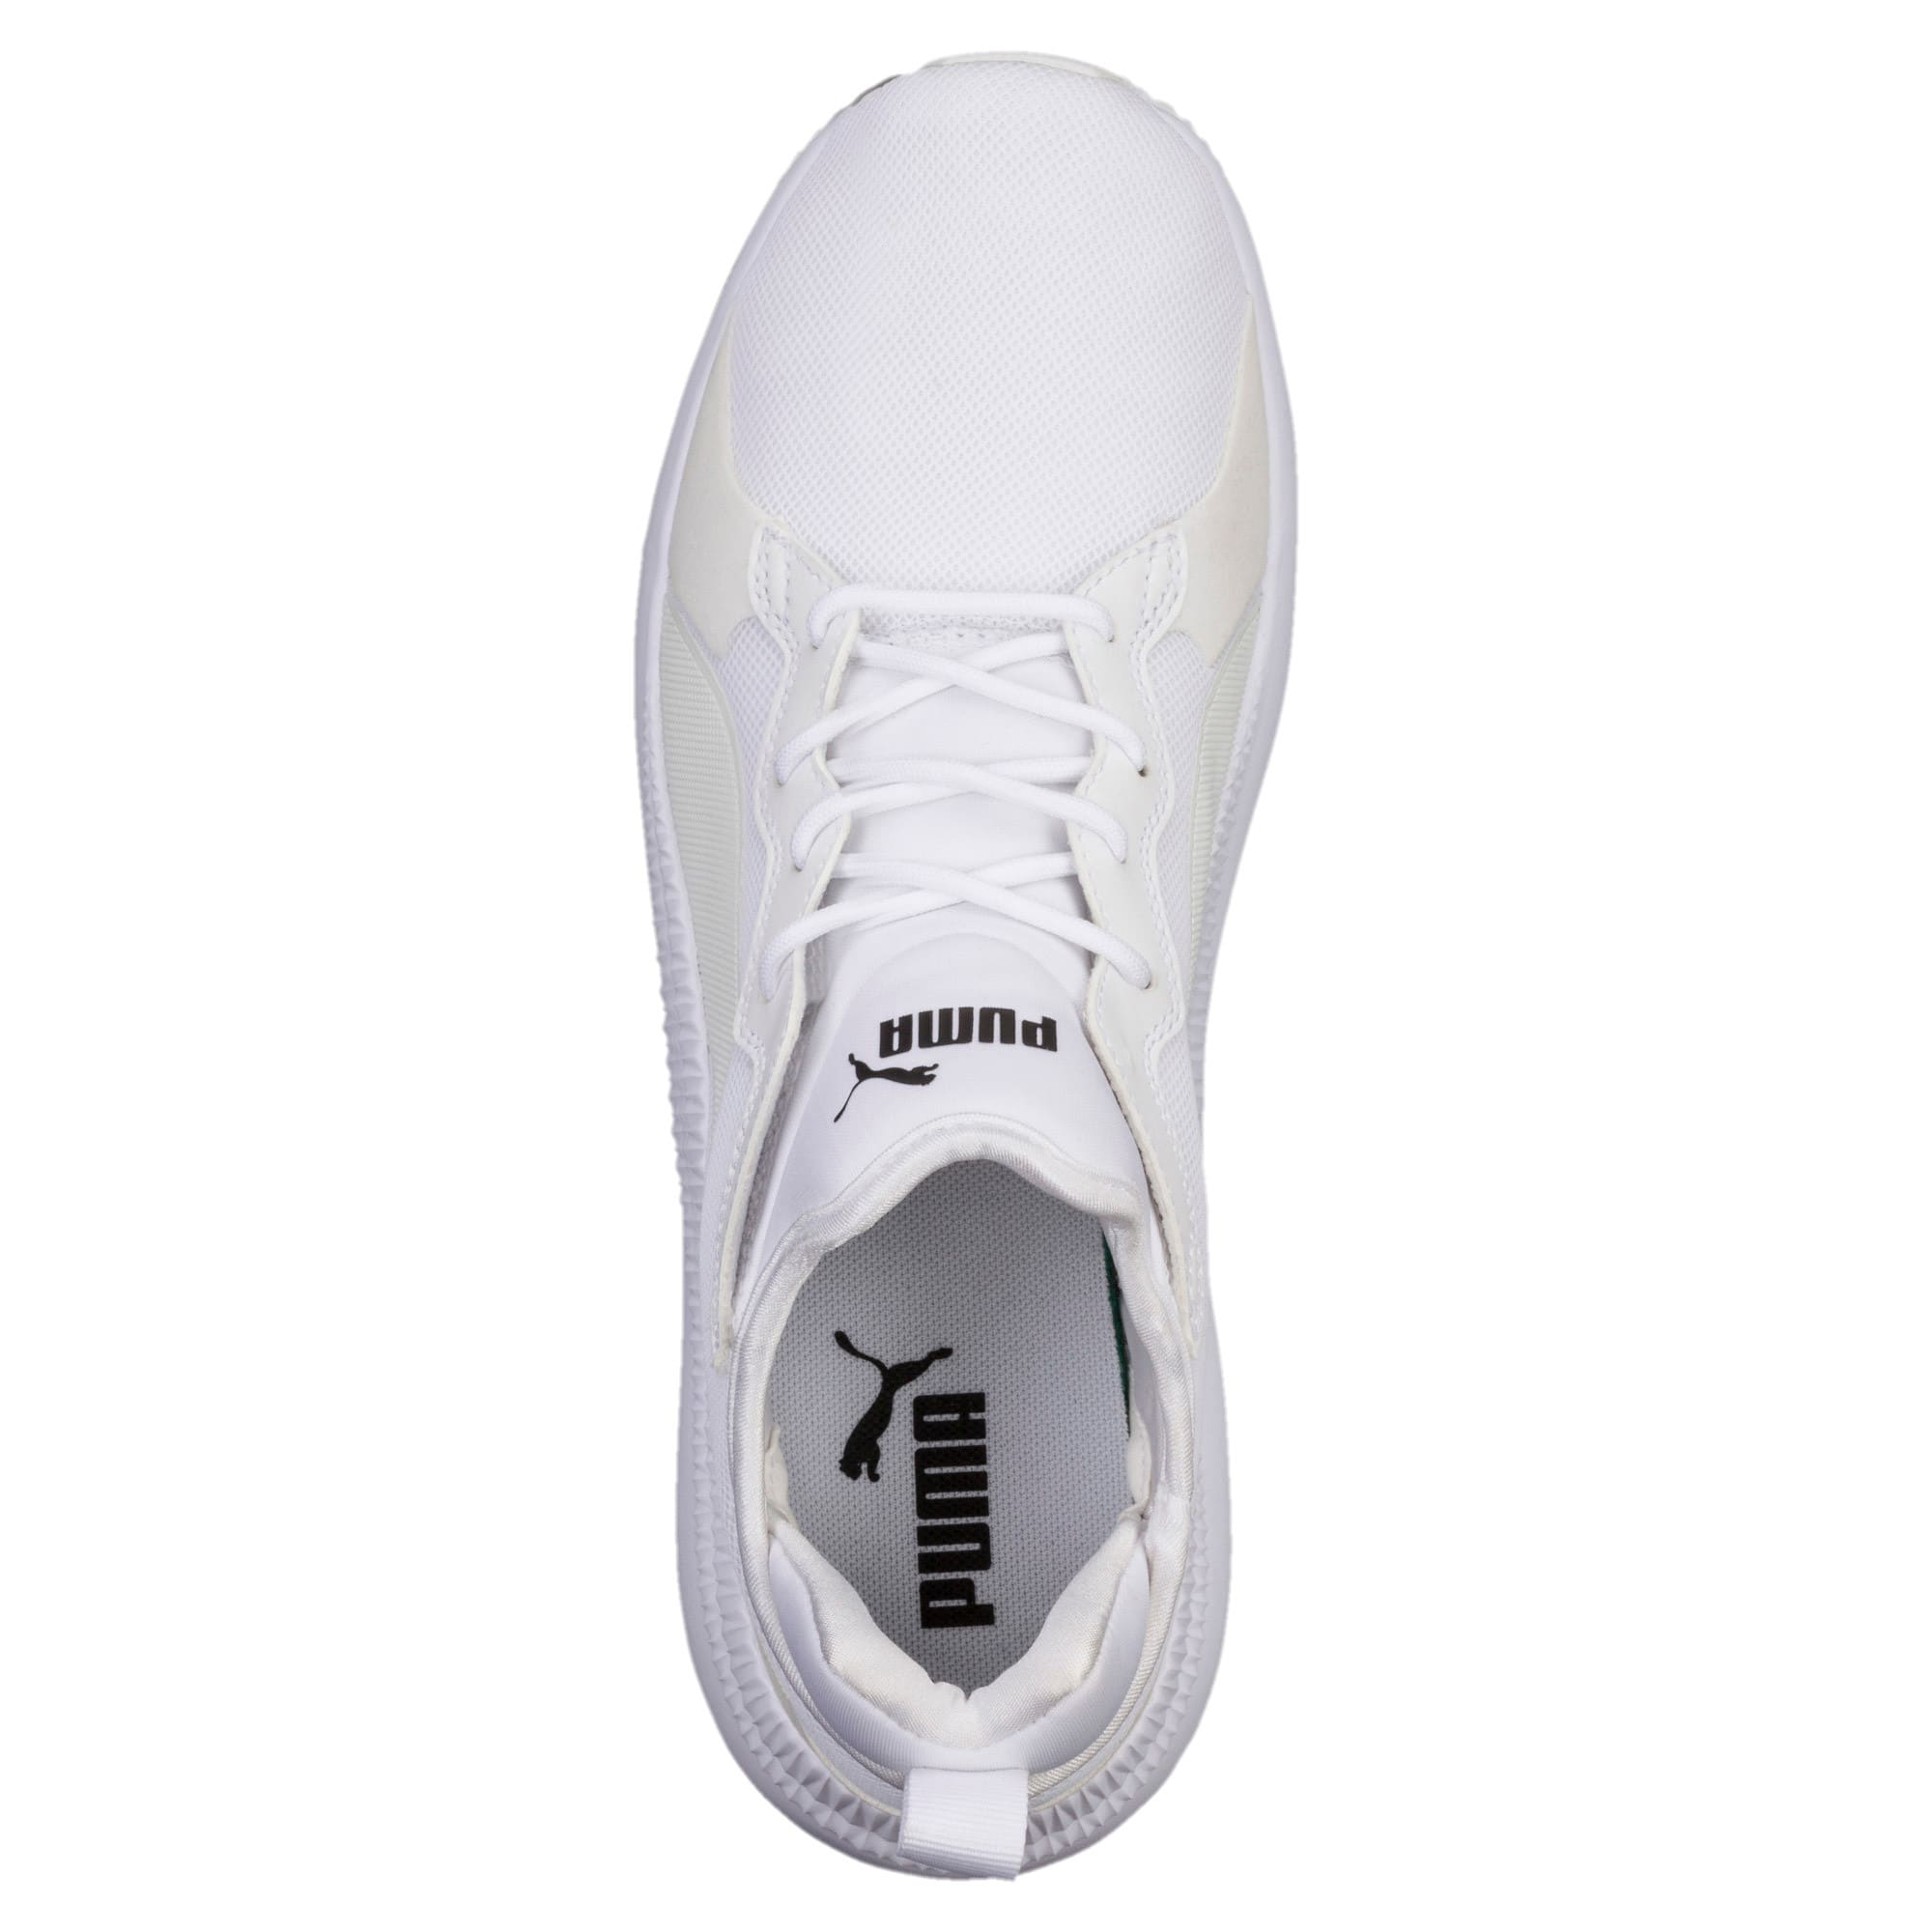 Thumbnail 5 of Pacer Next Trainers, Puma White-Puma White, medium-IND